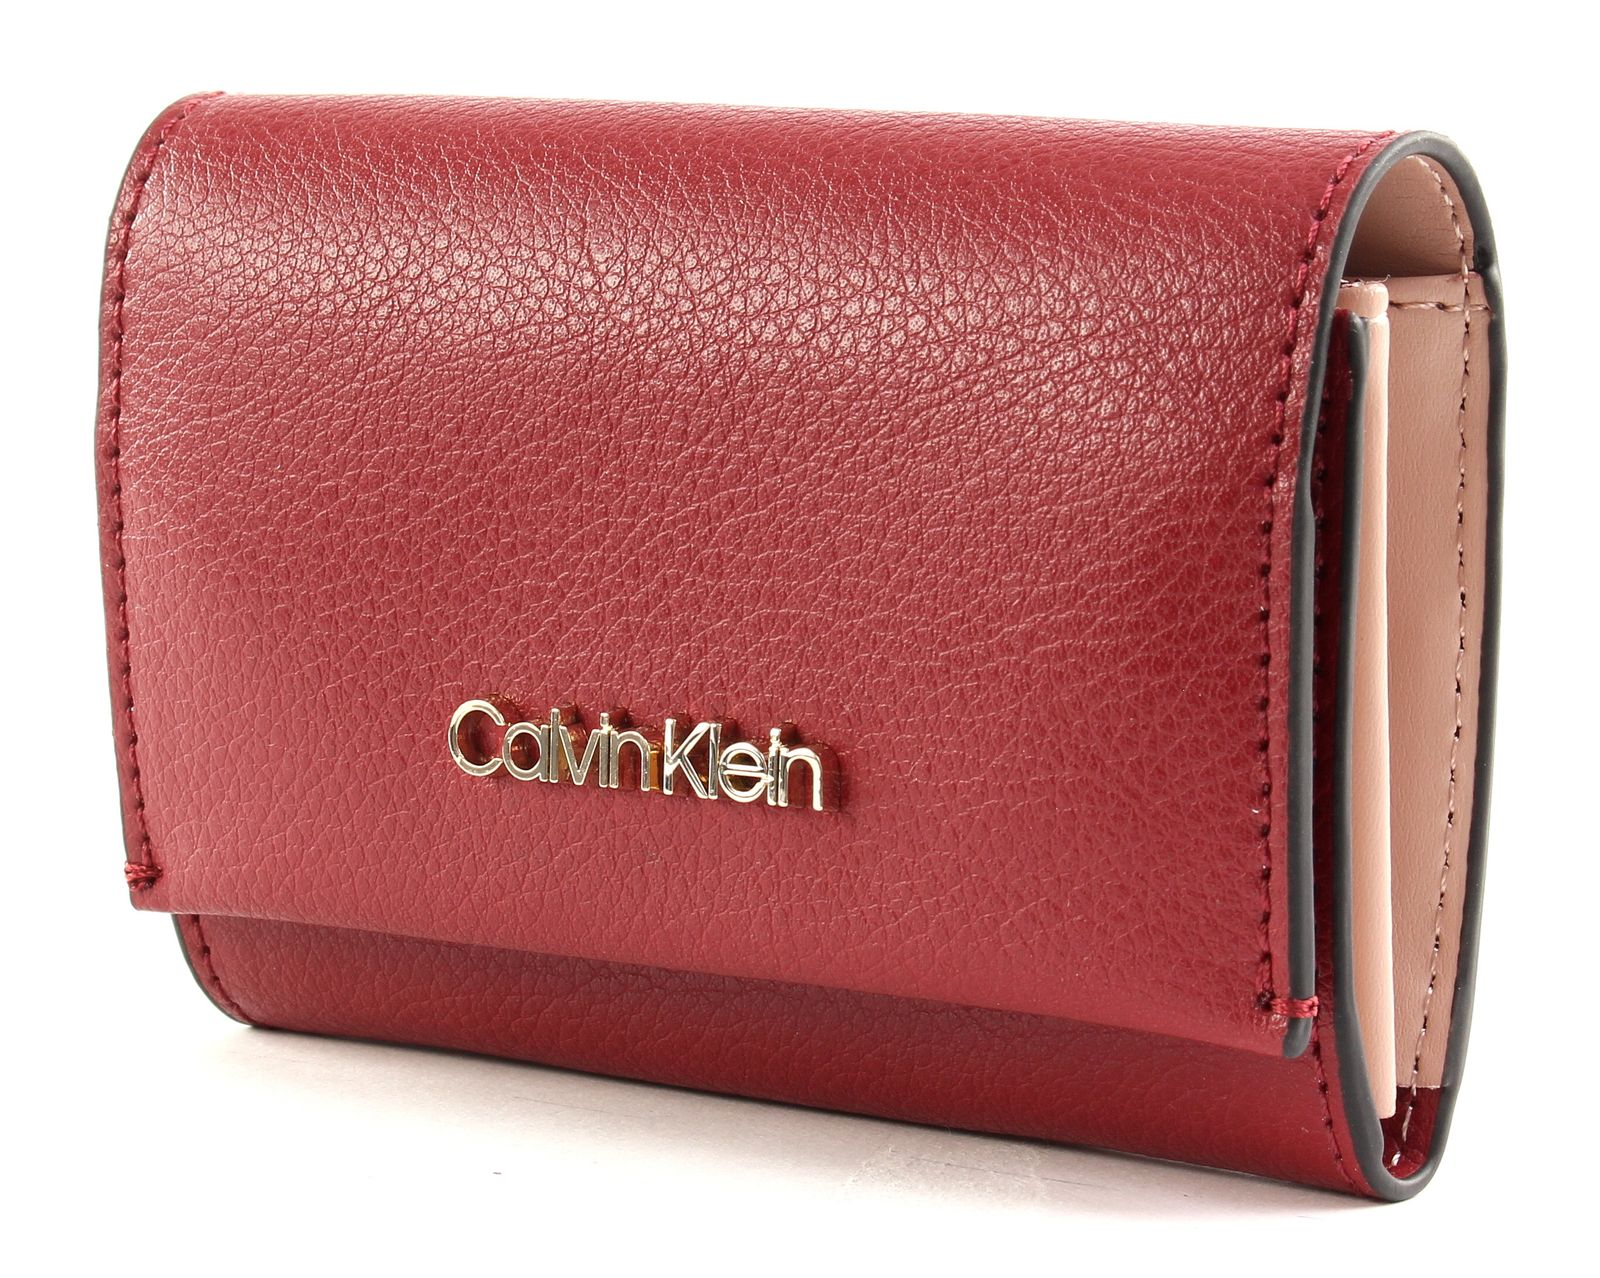 Calvin Klein Enfold Cardholder Wallet Barn Red